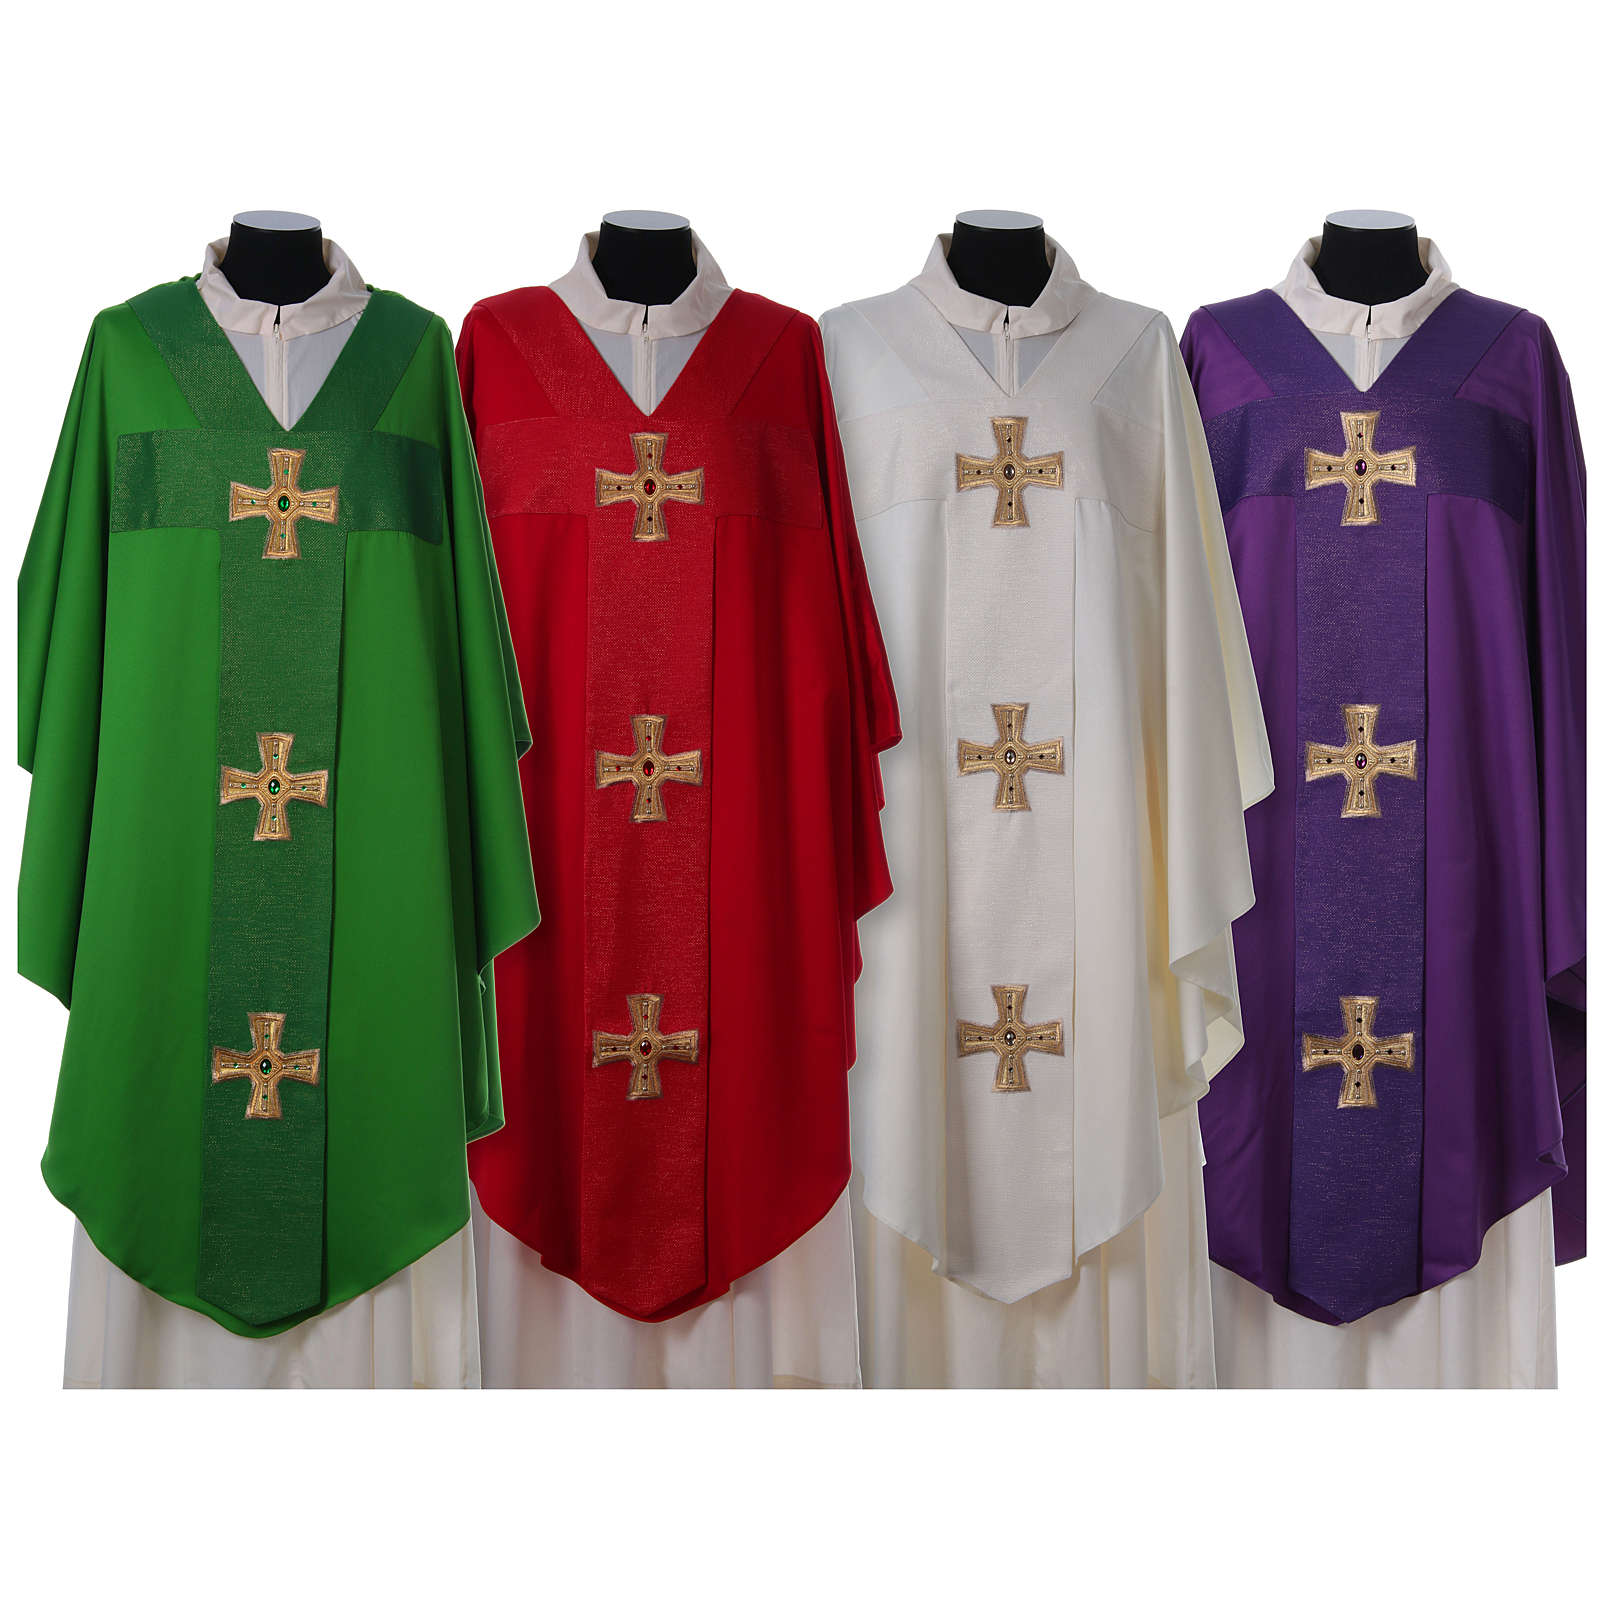 Chasuble and stole with cross and stones 100% polyester 4